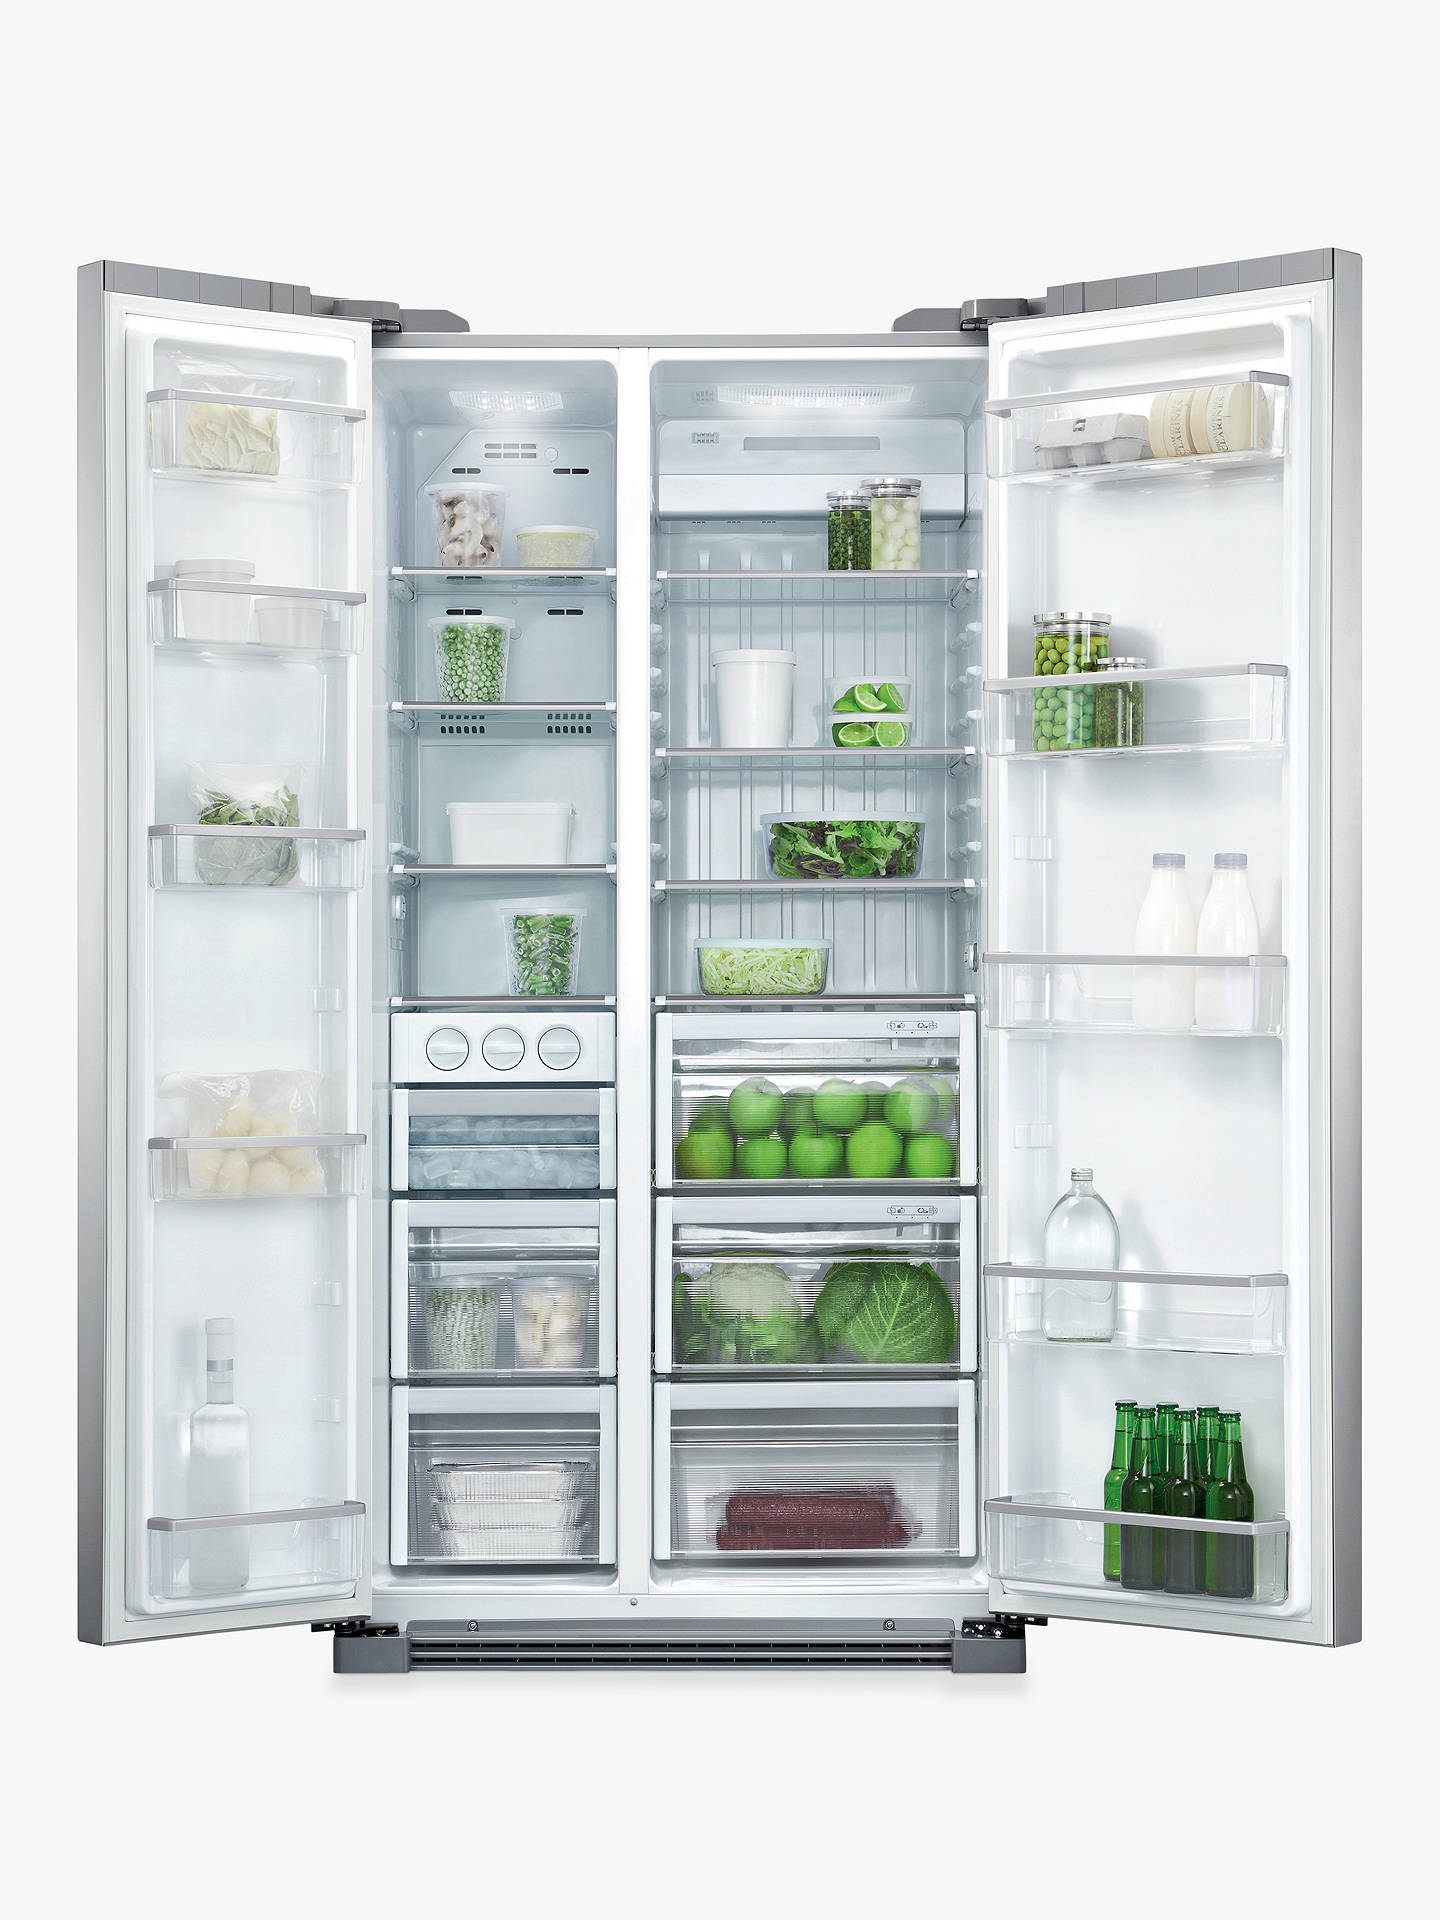 BuyFisher & Paykel  RX628DX1 American Style Fridge Freezer, Stainless Steel Online at johnlewis.com